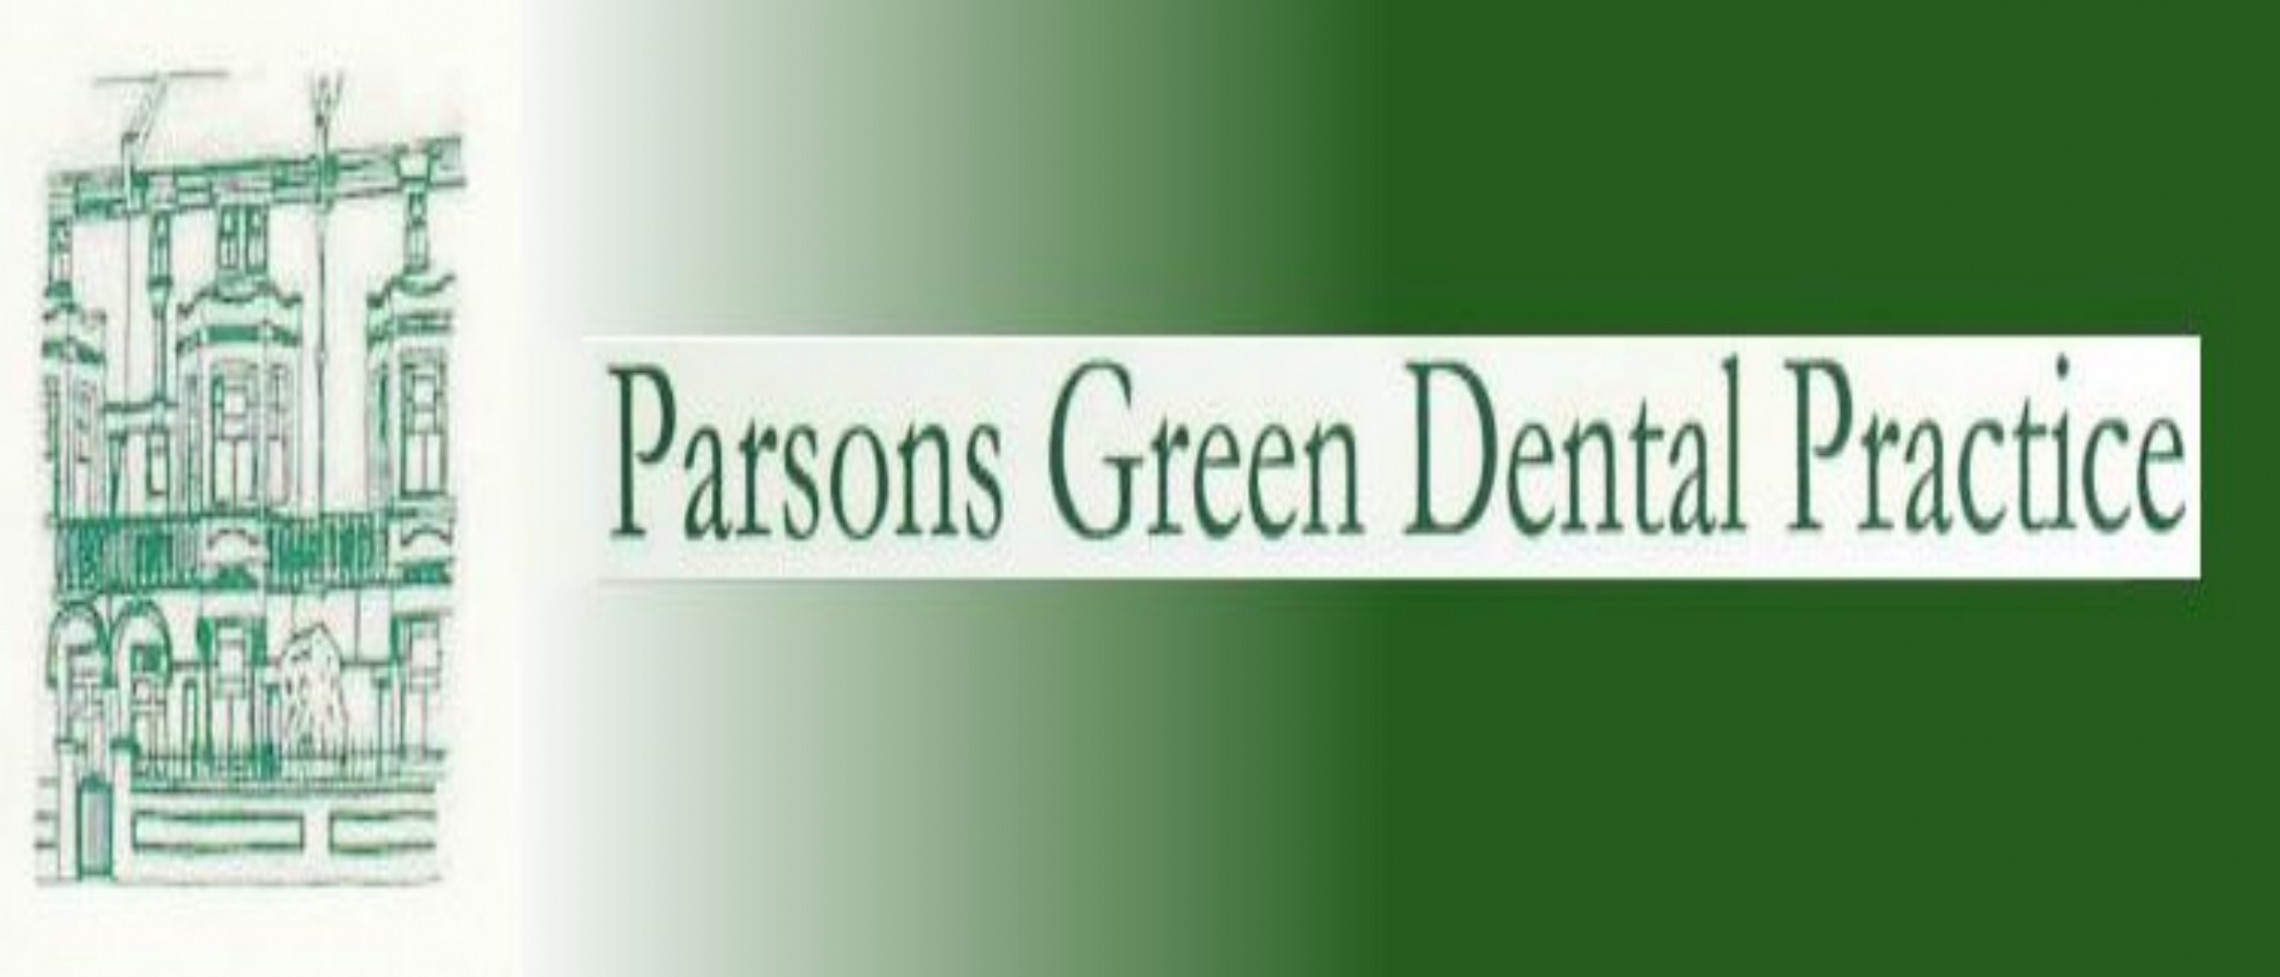 Parsons Green Dental Practice